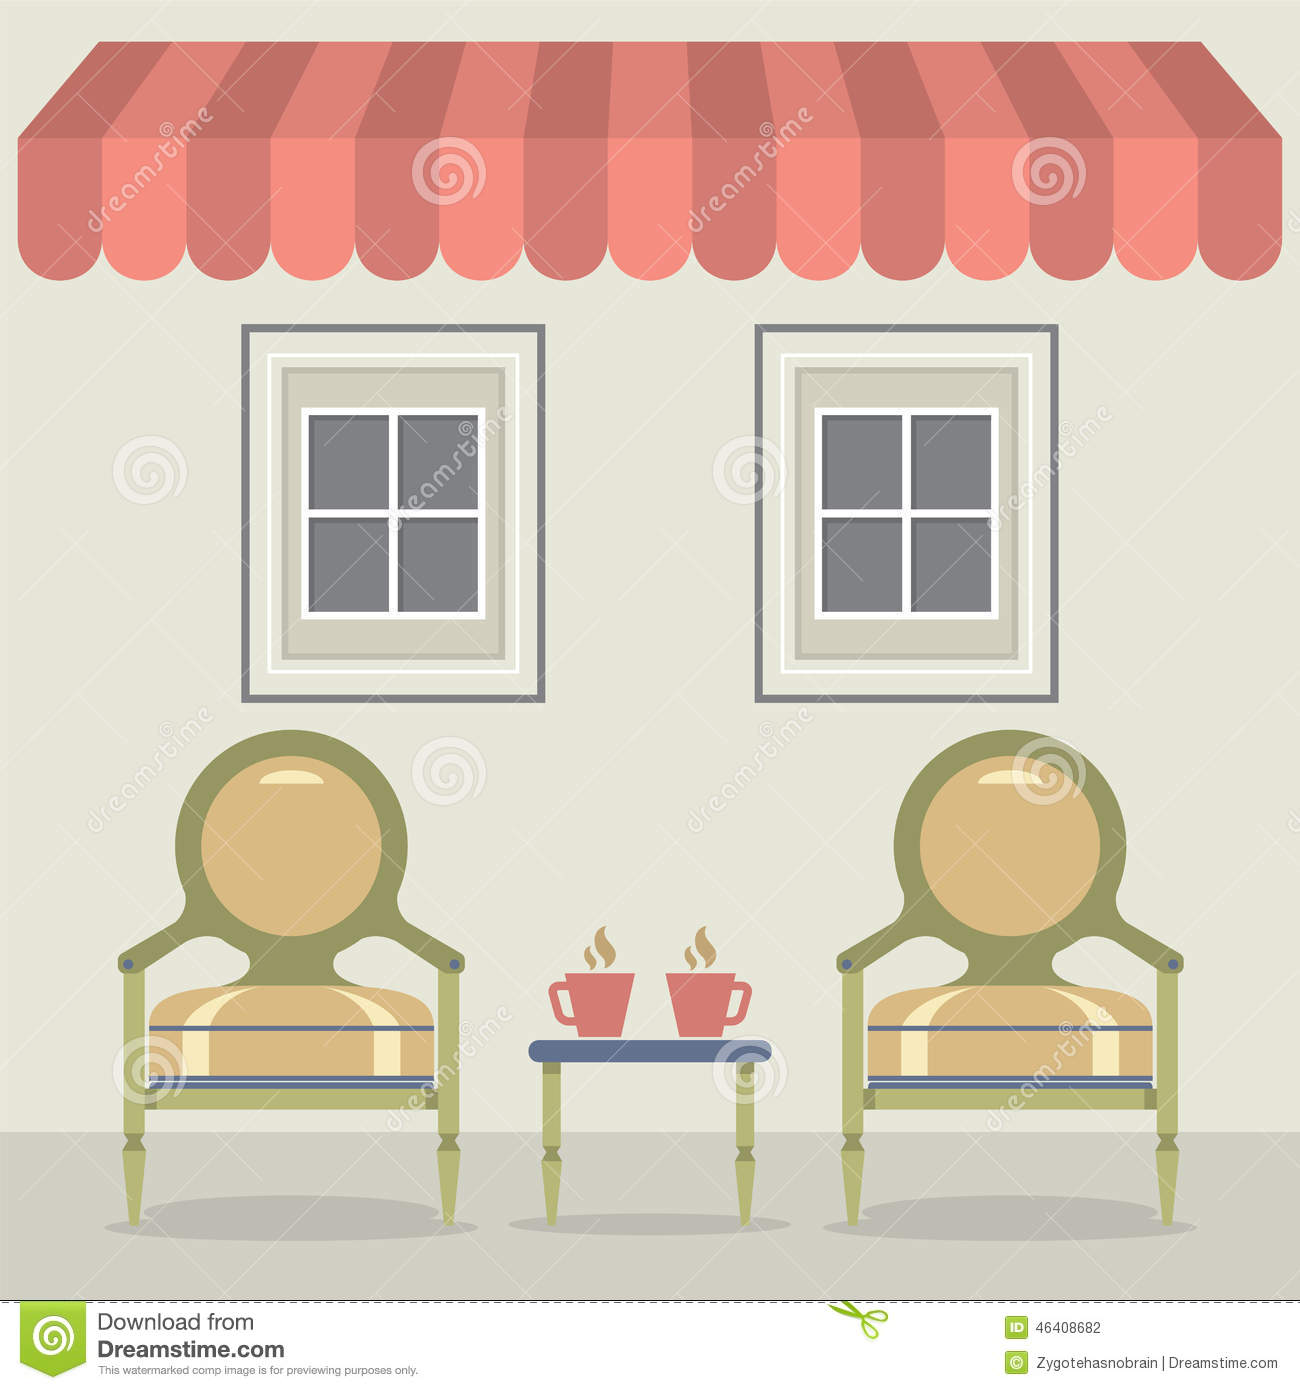 Awning Set Cartoon Vector Cartoondealer Com 31723121